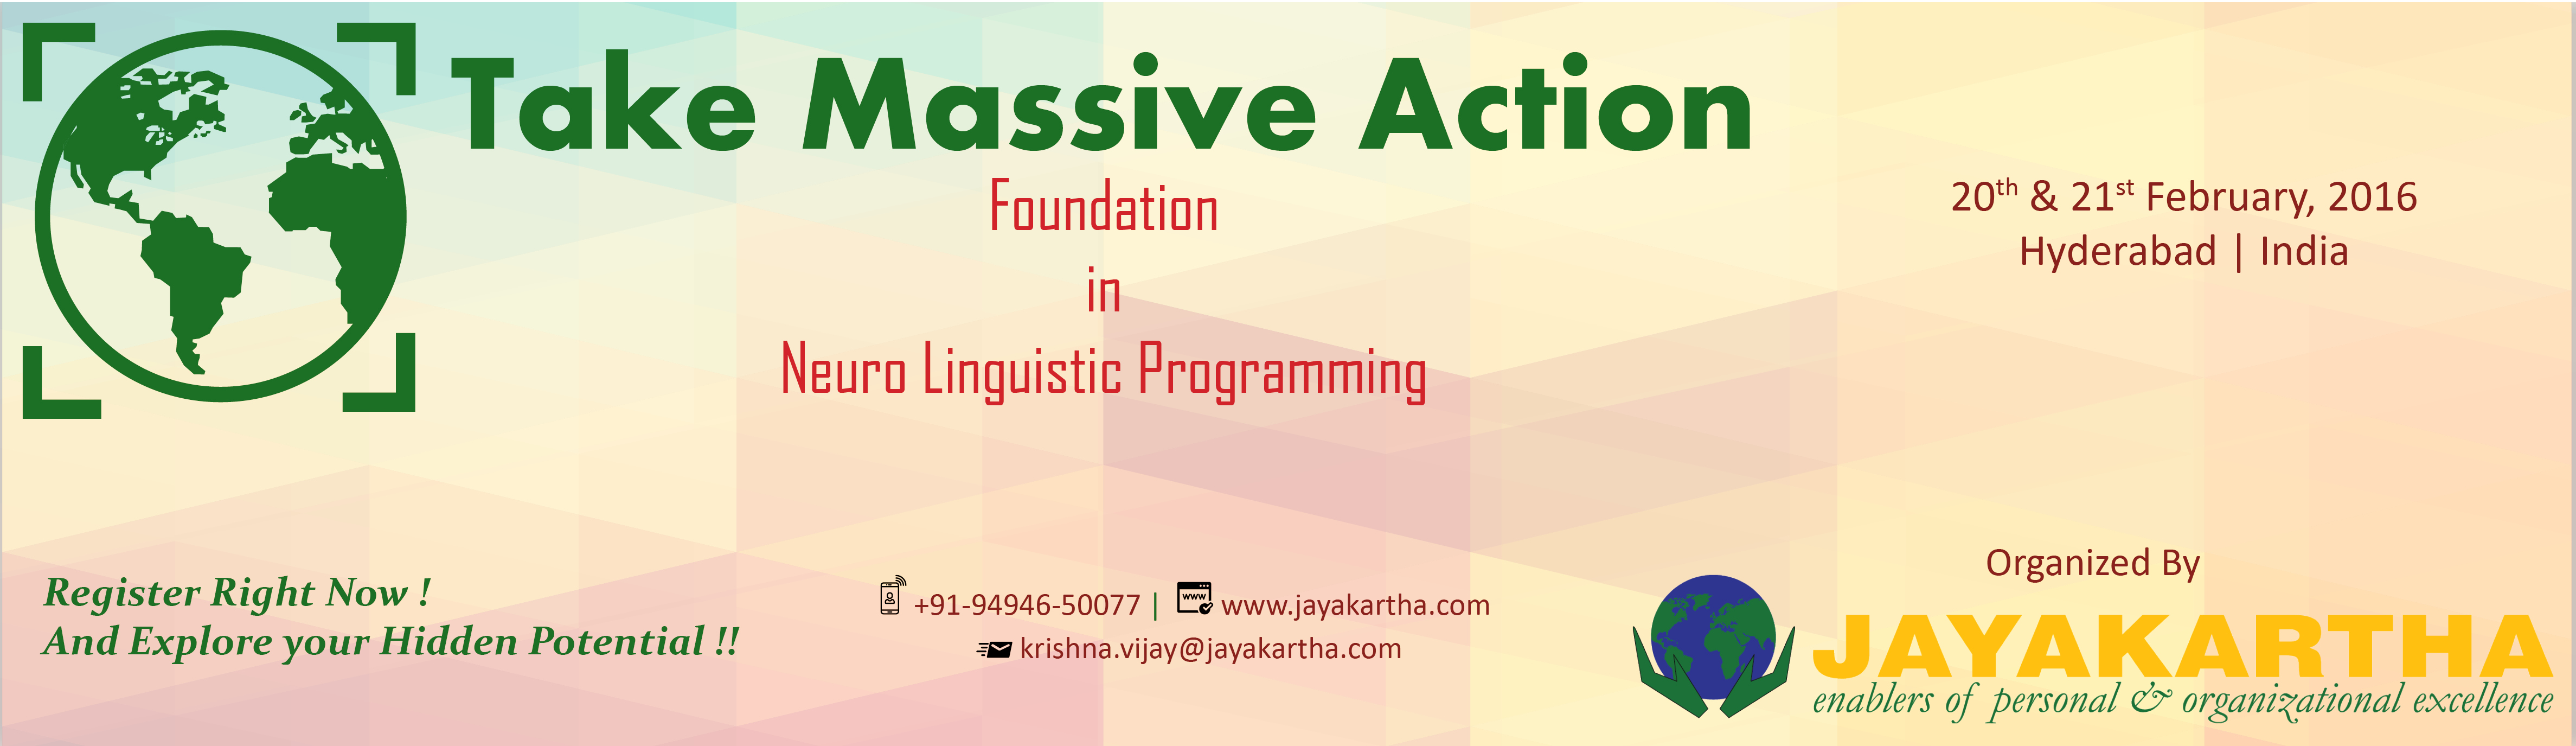 Take Massive Action - Foundation in NLP